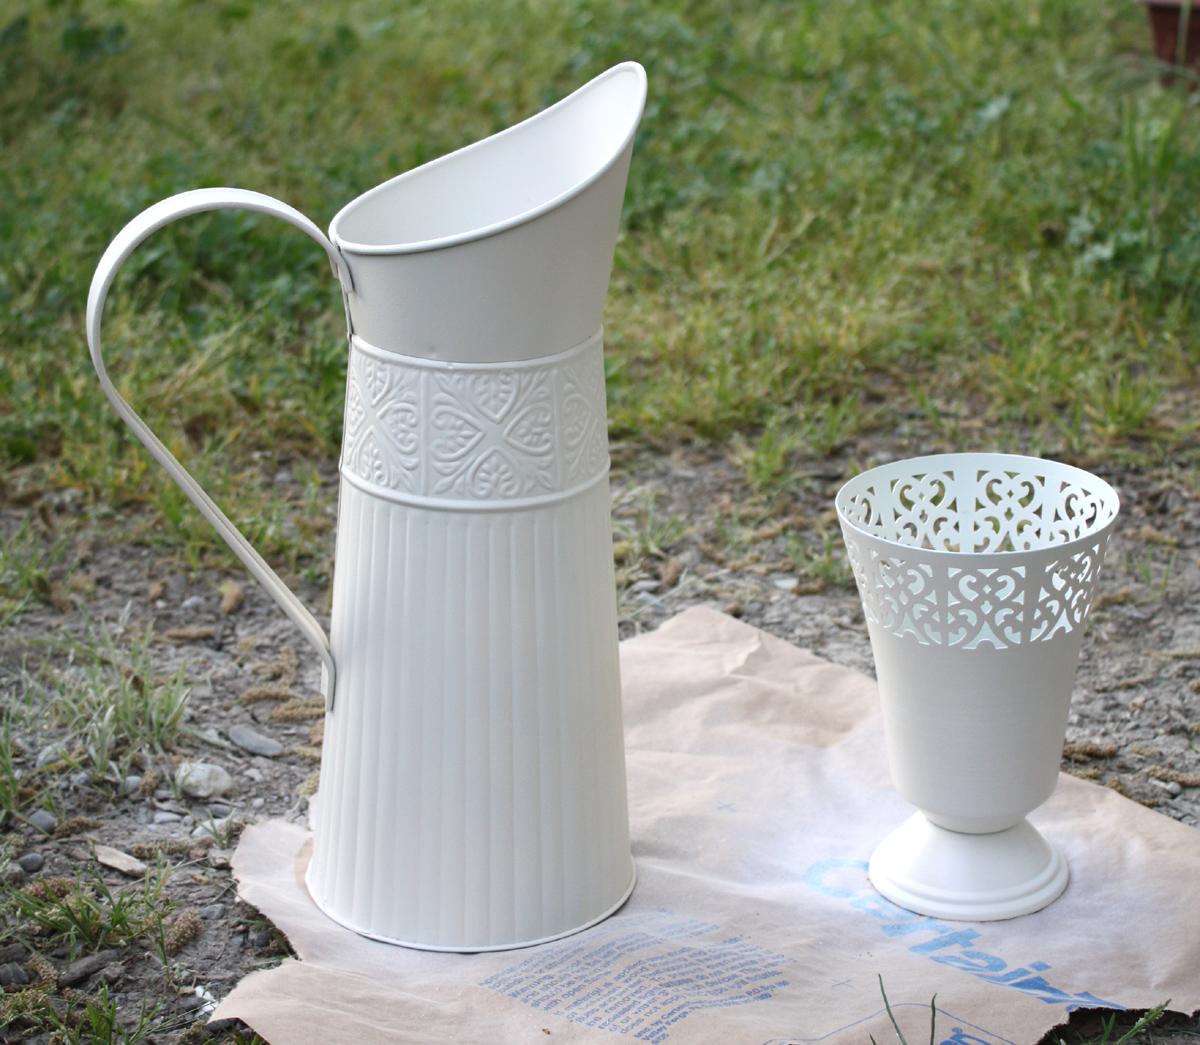 painting a thrift store vase and pitcher